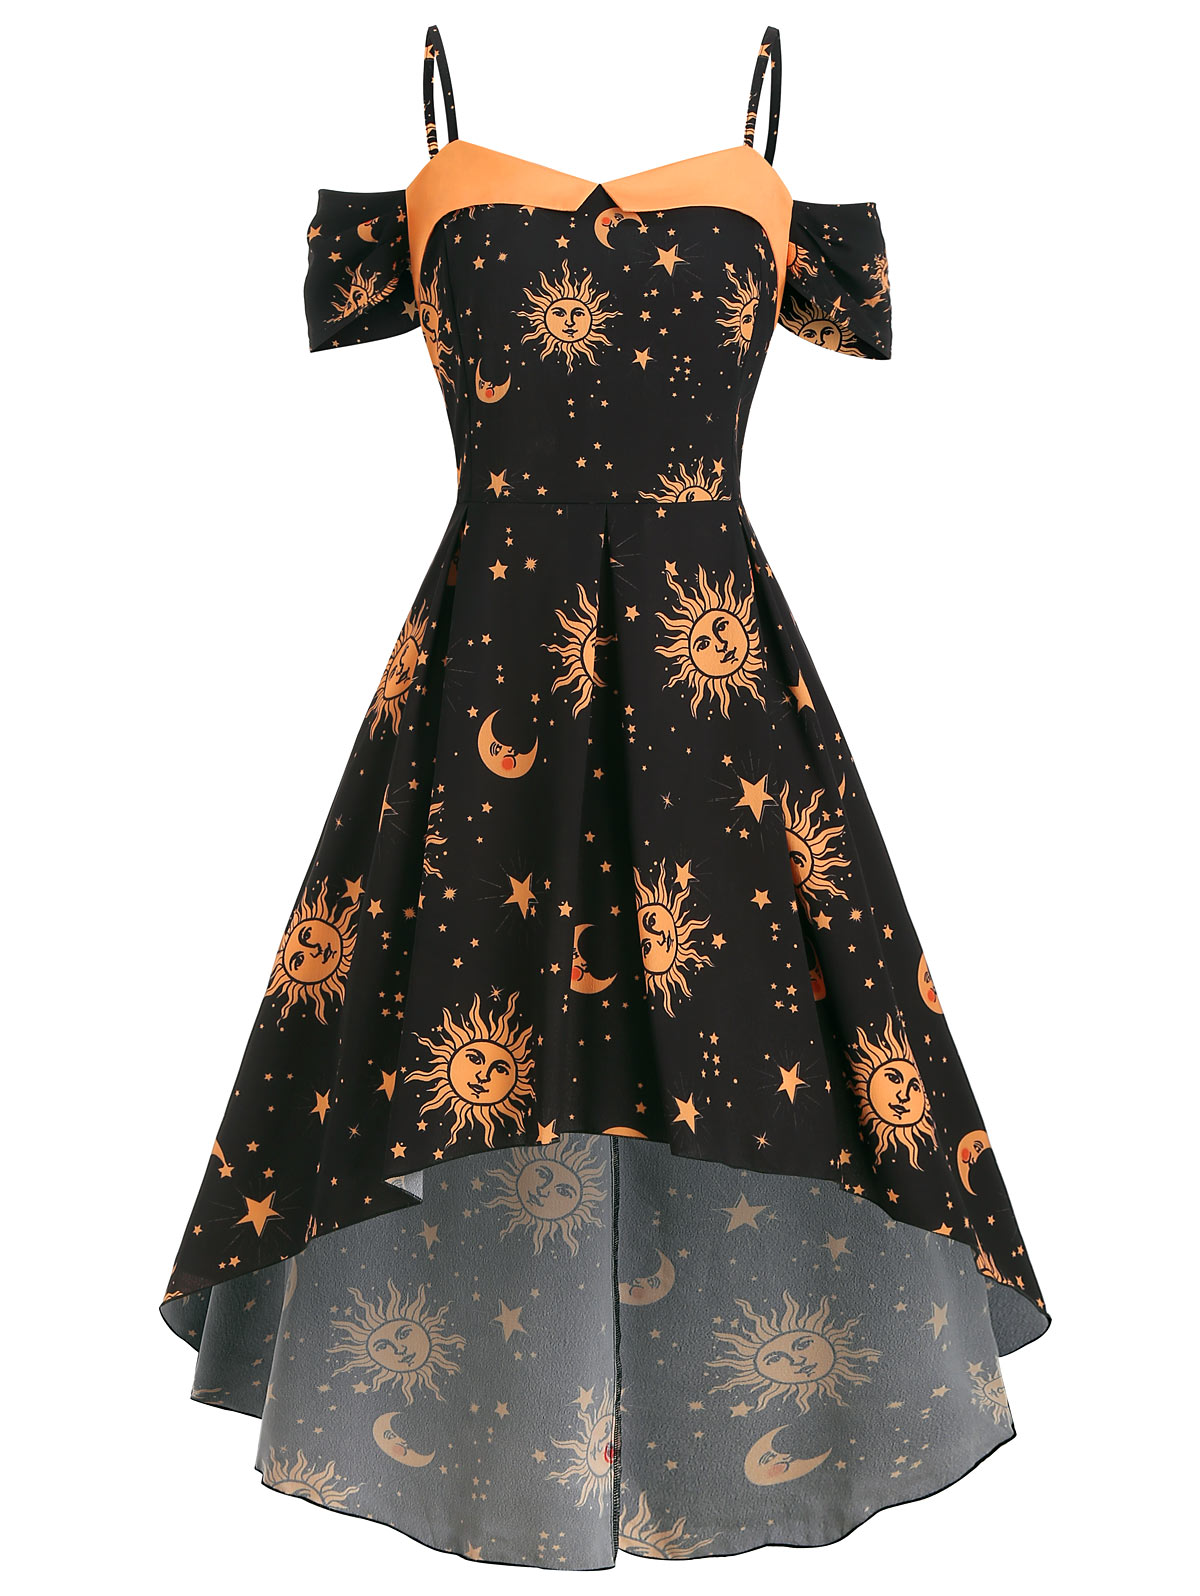 Plus Size Summer Strap Dress Star Sun Moon Print Sexy Open Shoulder Maxi Dress Women Vacation High Low Evening Party Dresses in Dresses from Women 39 s Clothing